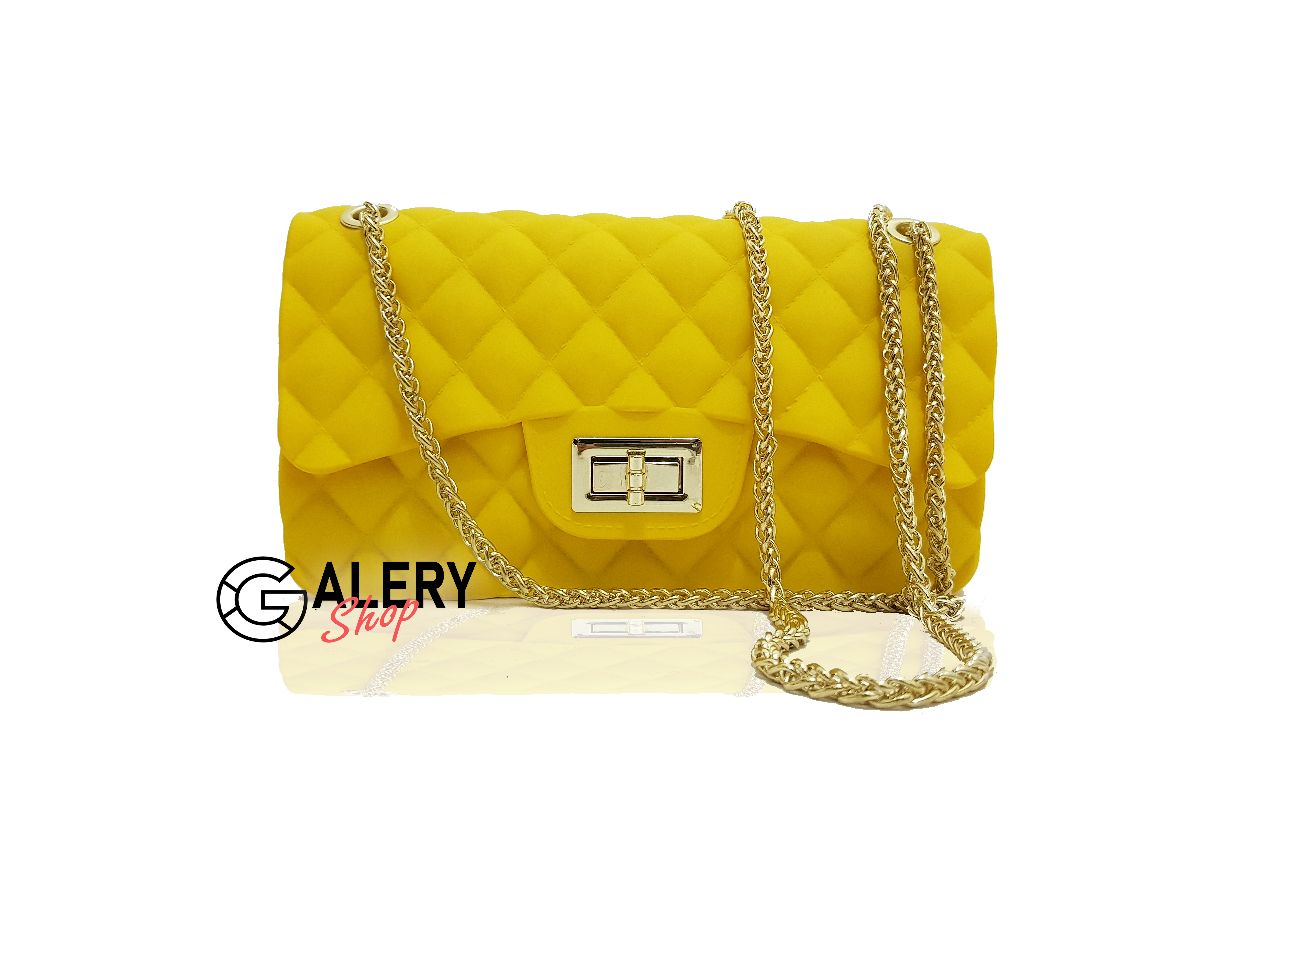 5d87da27018 galery shop tas jelly uk besar jely clasik and chevron bag free SYAL ...